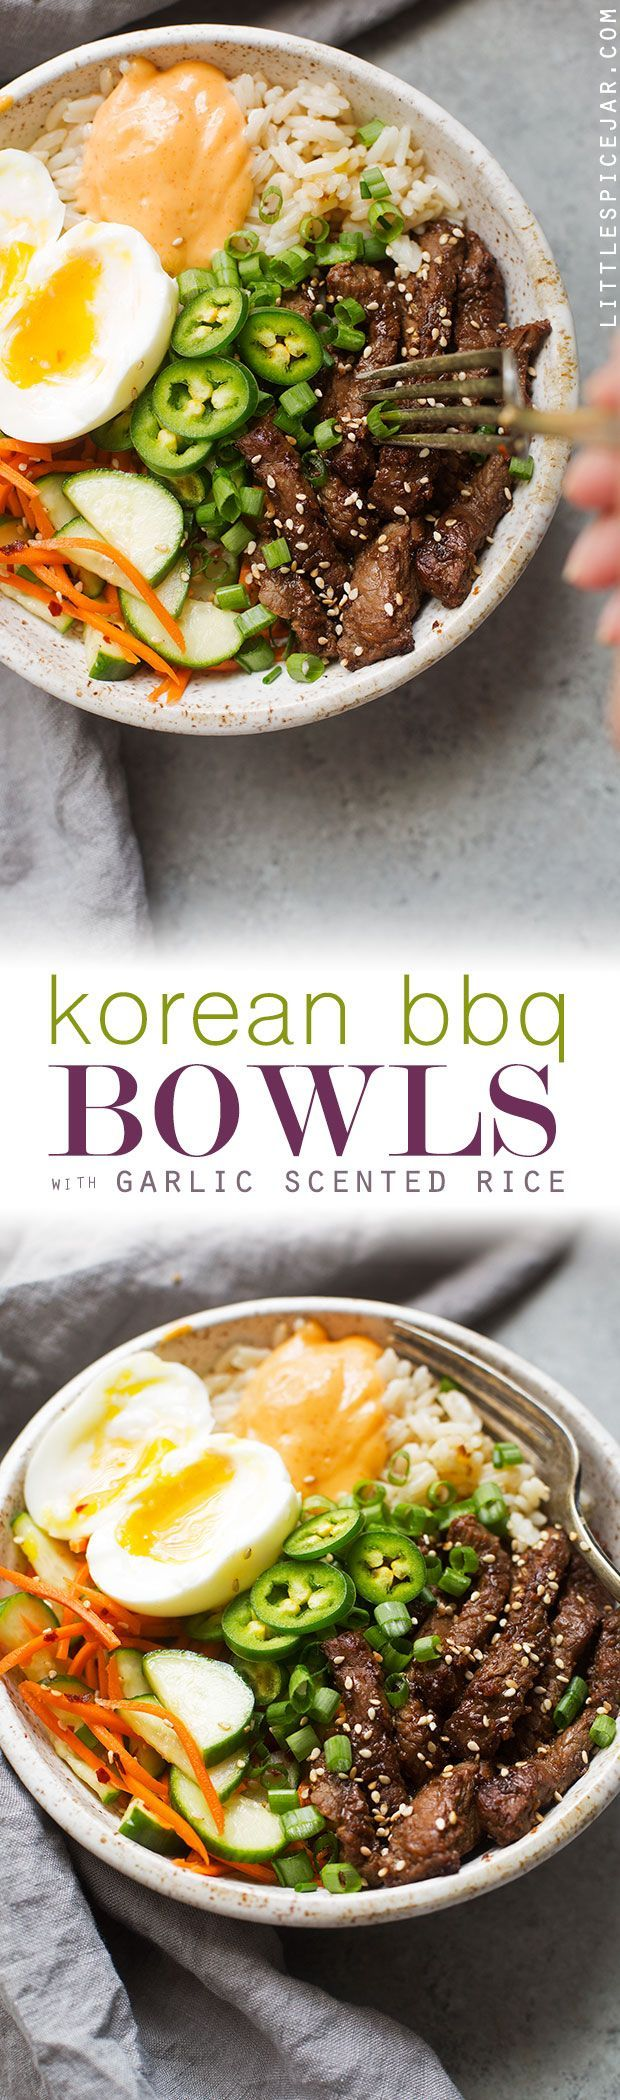 Korean BBQ Bowls with Garlic Scented Rice - Warm, comforting bowls with marinated steak, garlic rice, and a pickled cucumber salad. It's seriously amazing! #koreanbbqbowls #bowls #garlicrice   http://Littlespicejar.com